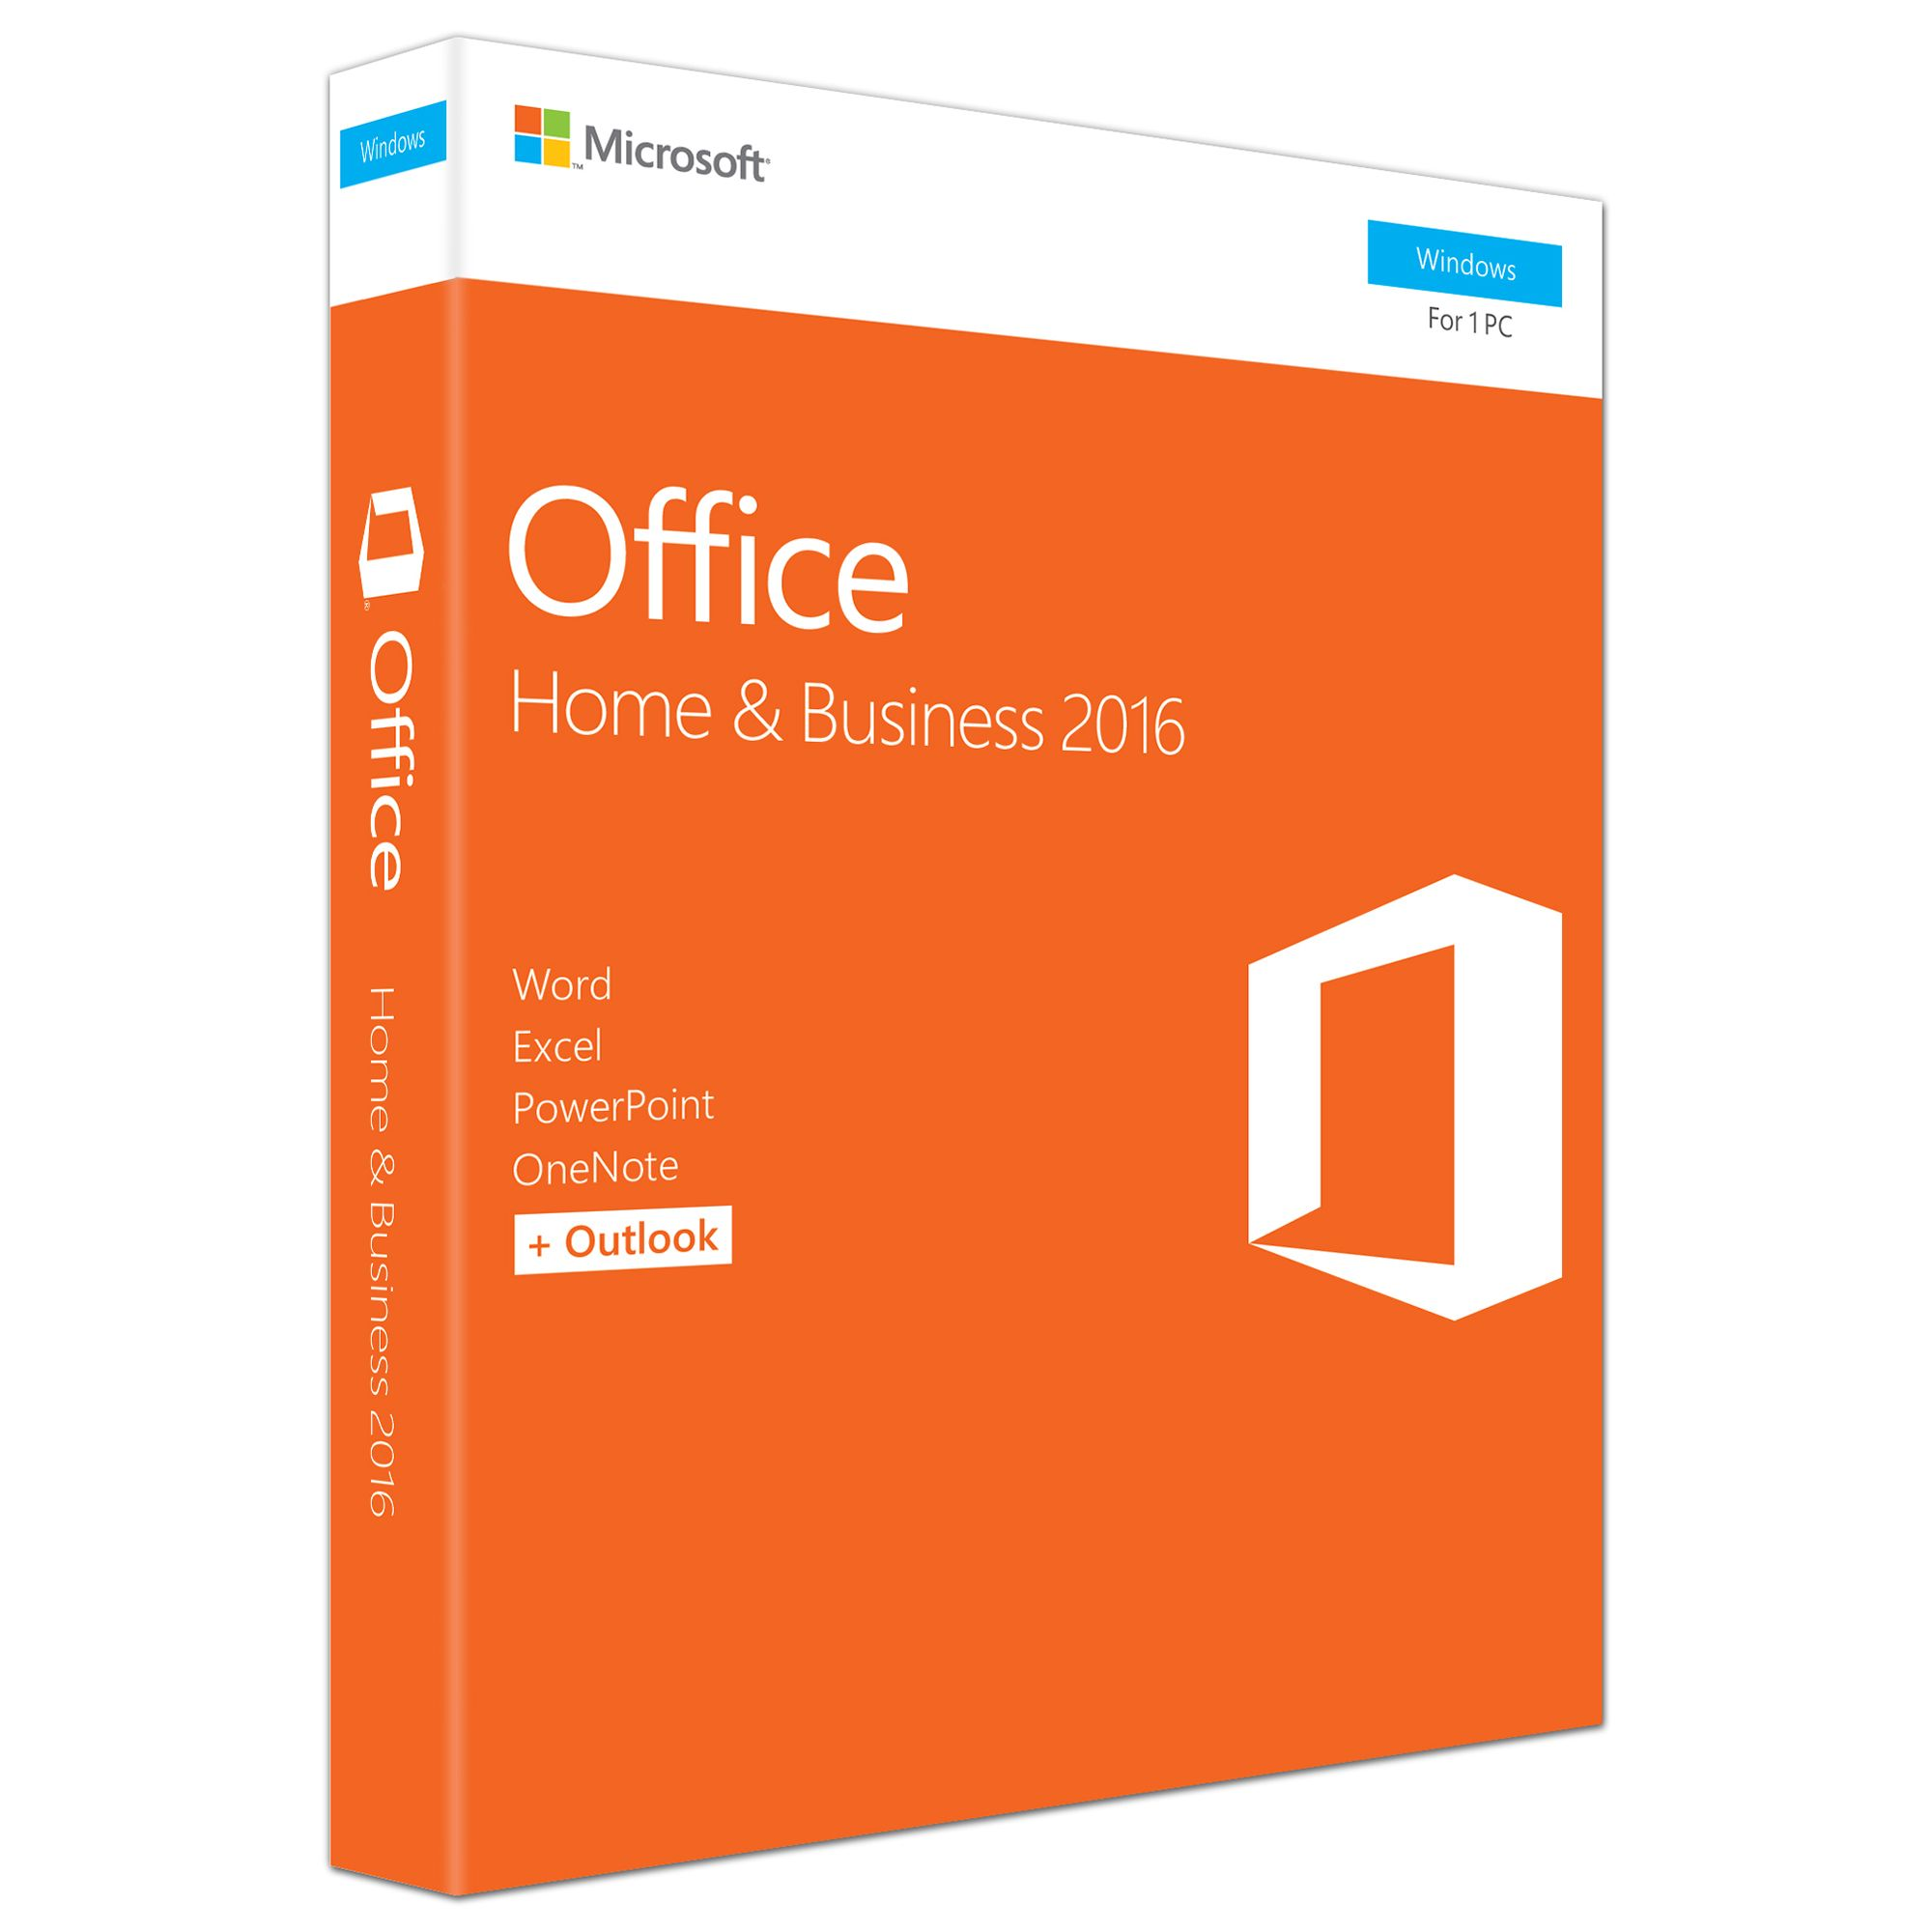 Microsoft Office Home & Business 2016 Engleza EuroZone Medialess P2